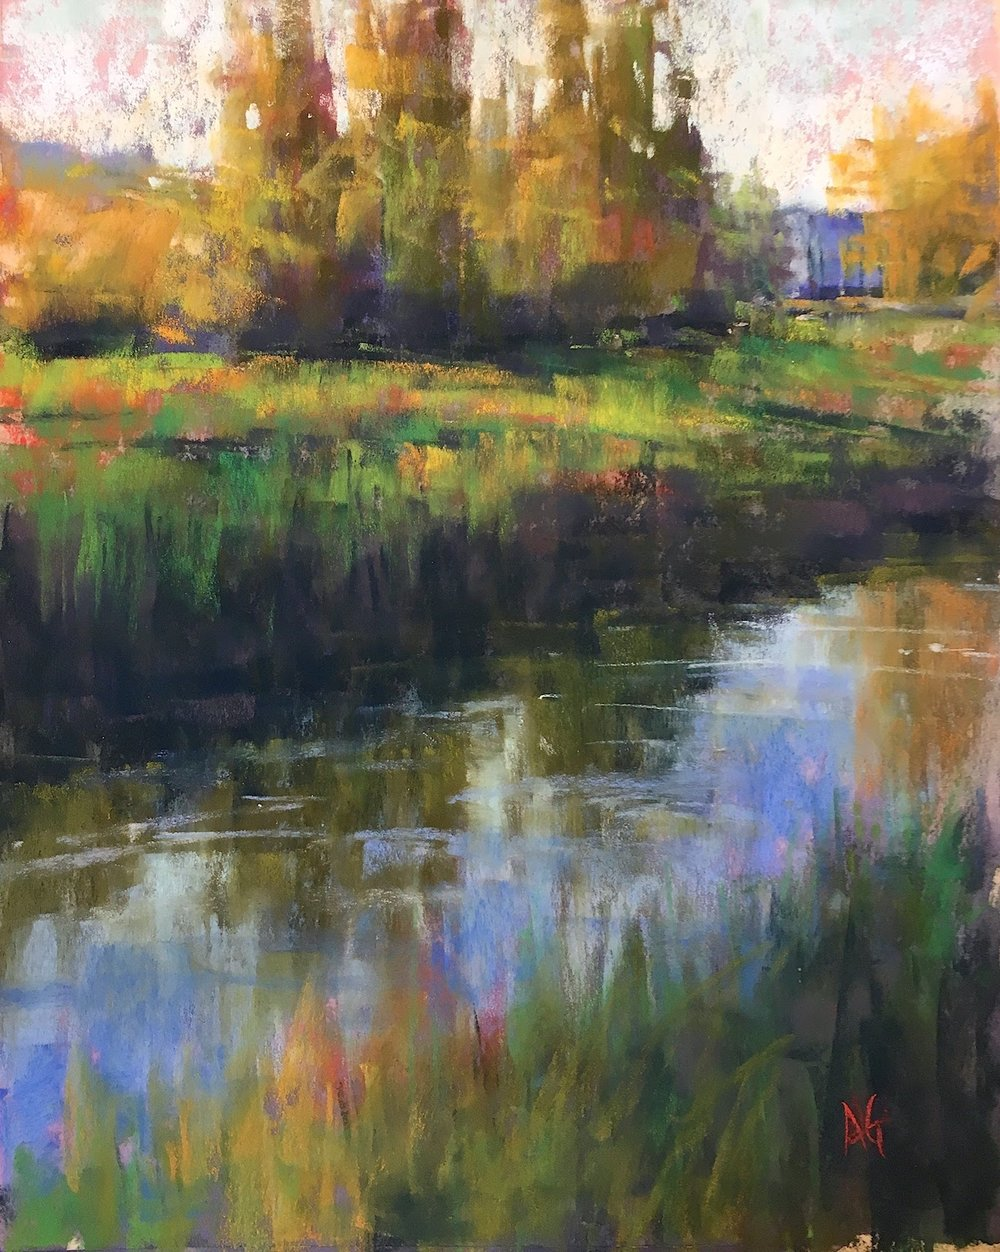 Reflections in the Slough. 9x12. Sold.